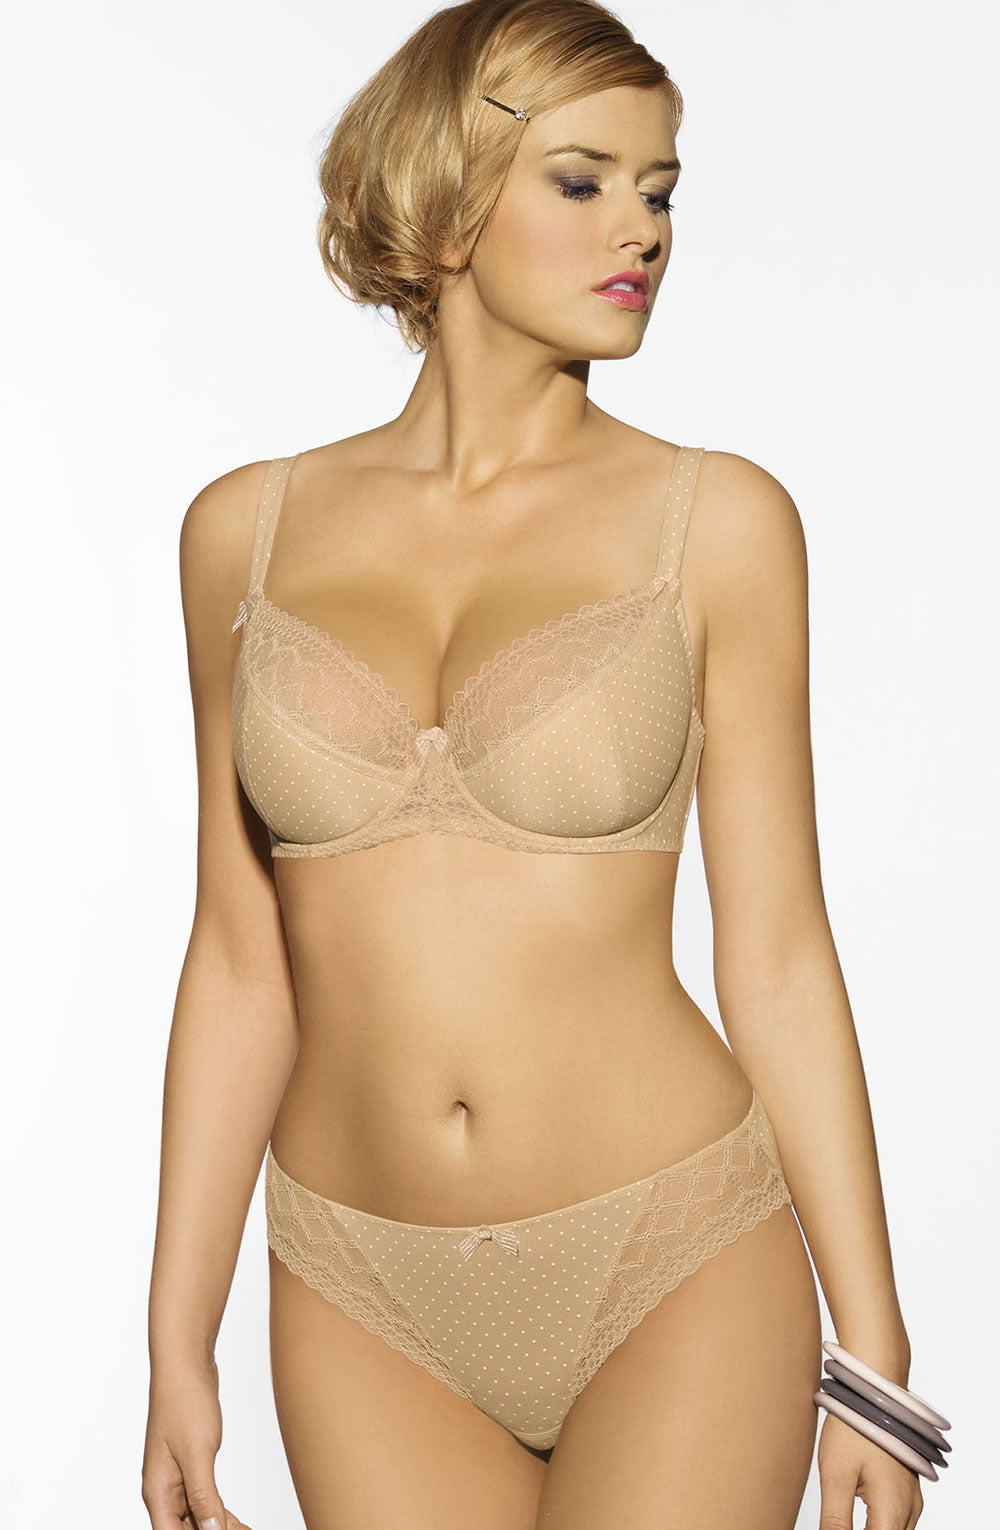 Corin Beverly Full Cup Underwire Bra